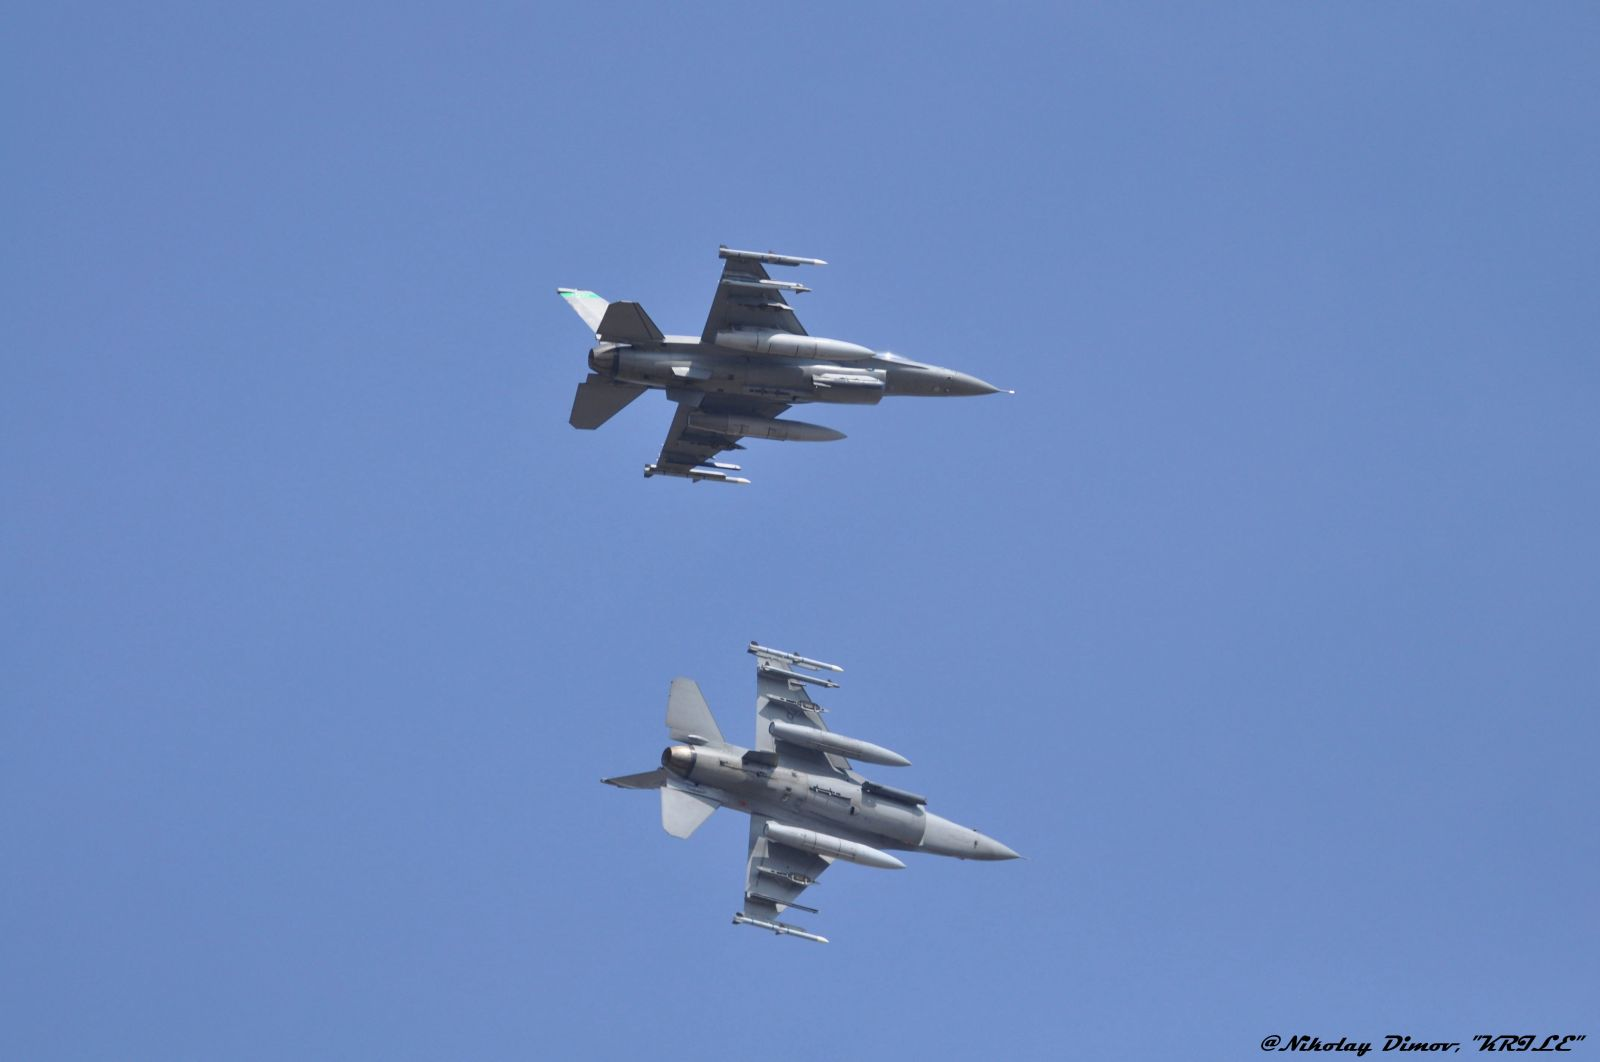 U.S. F-16s From Aviano AB Have Started Supporting NATO Enhanced Air Policing From Bulgaria